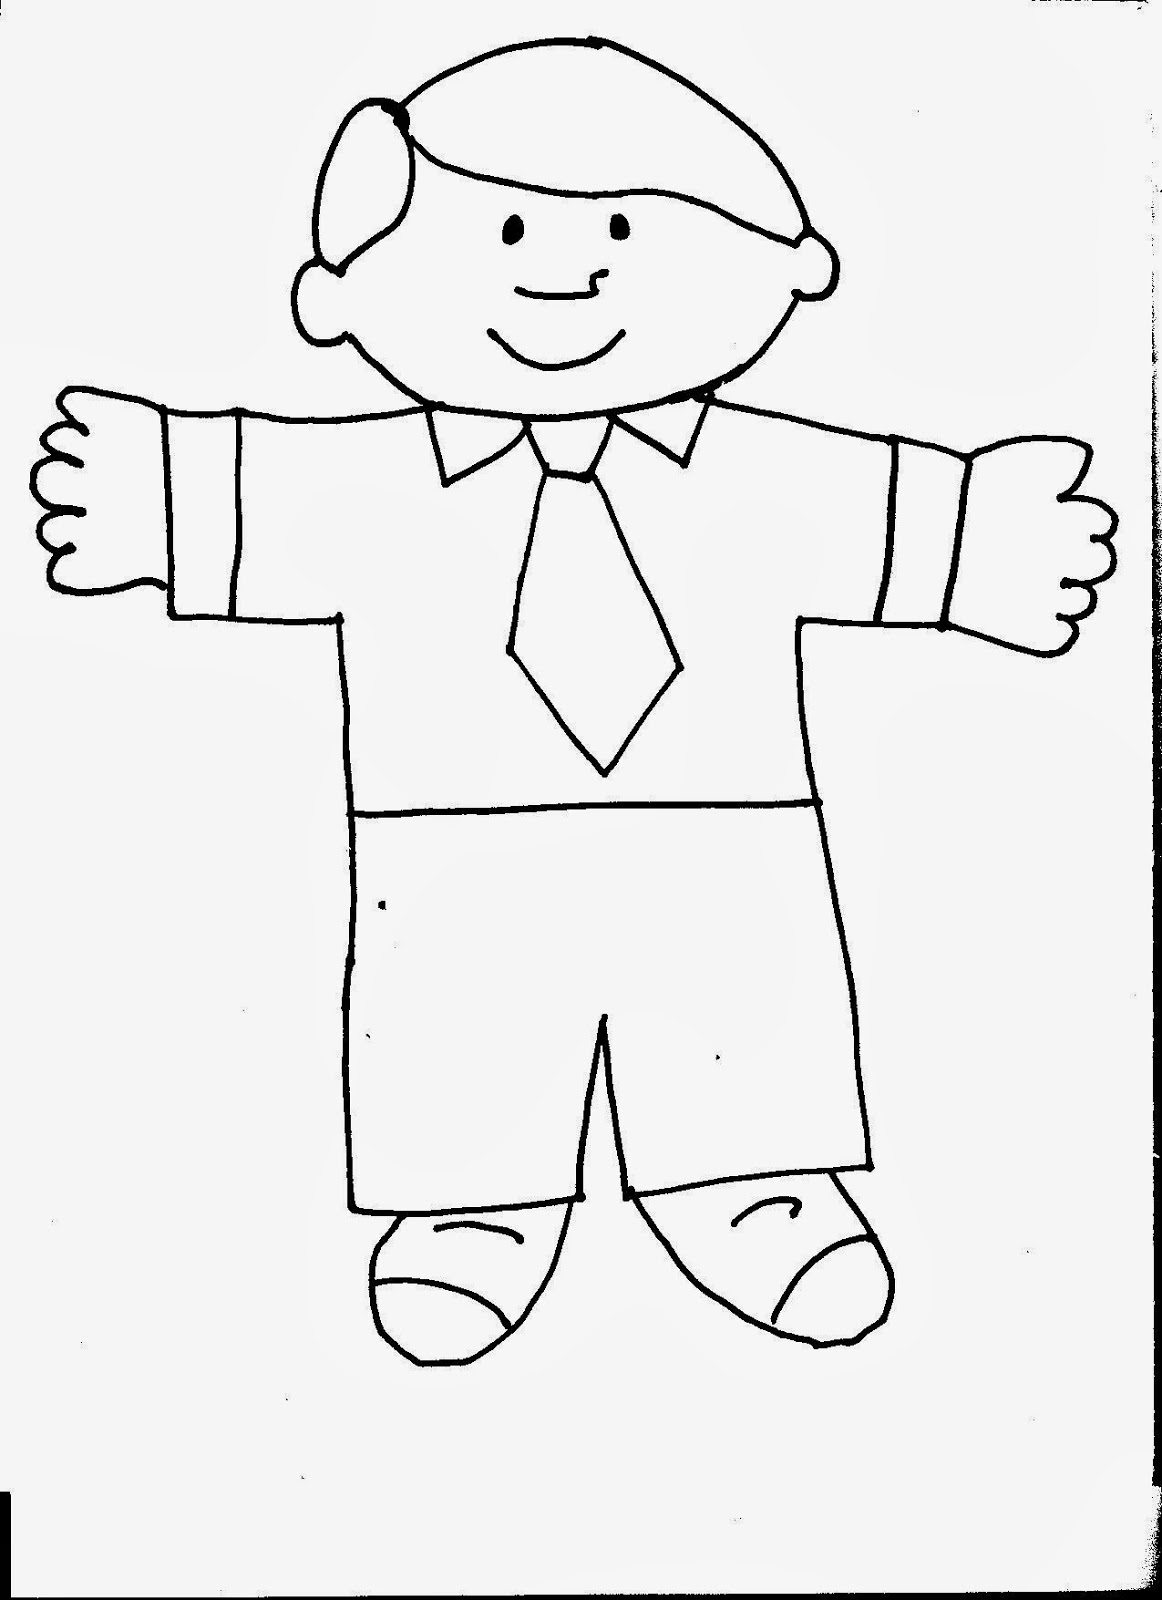 Free Worksheet Flat Stanley Worksheets flat stanley template 23 119 40 kb hitty jubilee 37 templates amp letter examples lab